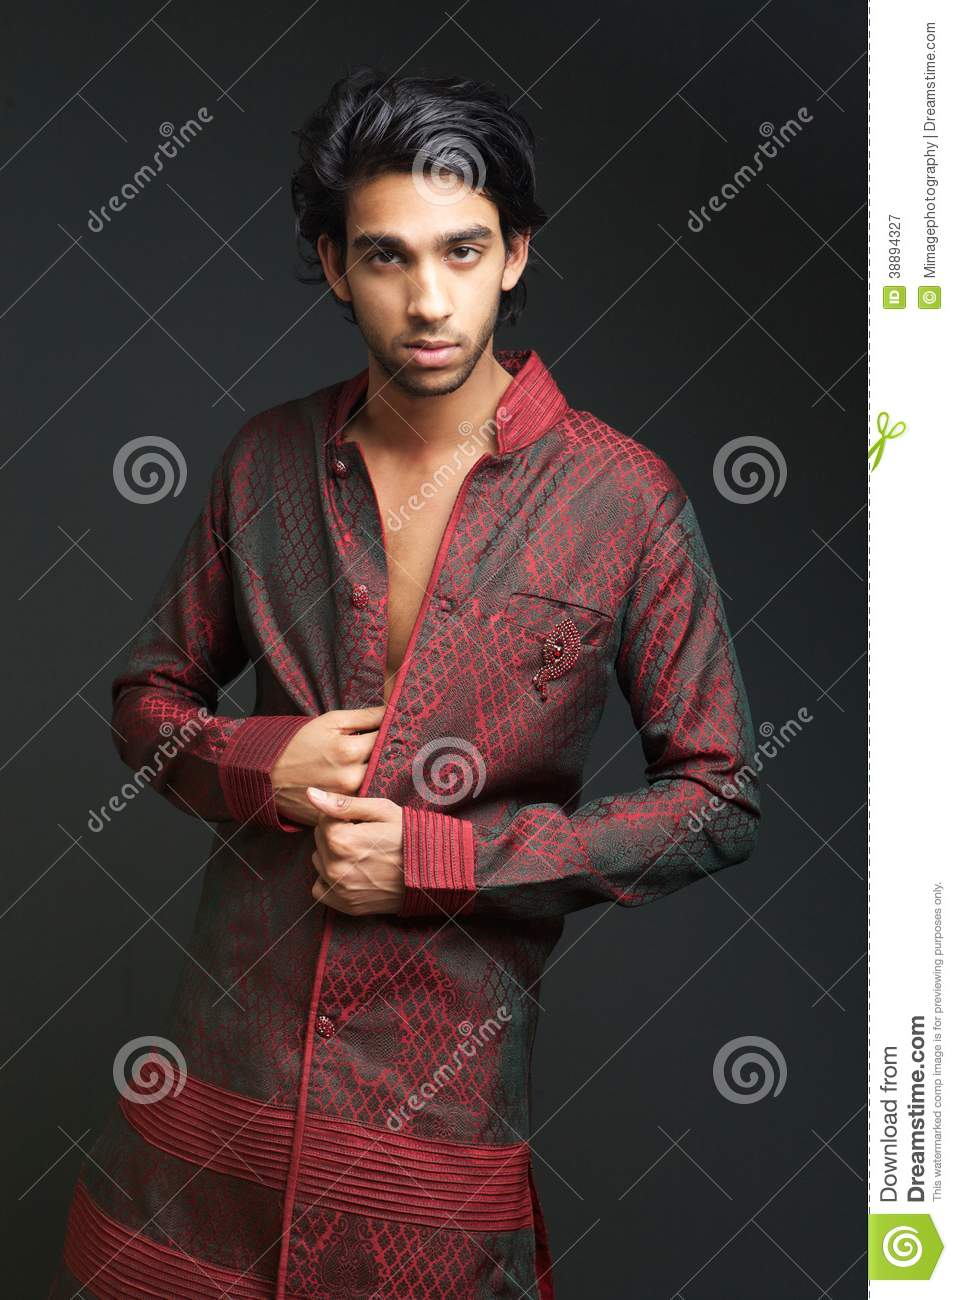 hindu single men in gray summit Matchcom, the leading online dating resource for singles search through thousands of personals and photos go ahead, it's free to look.